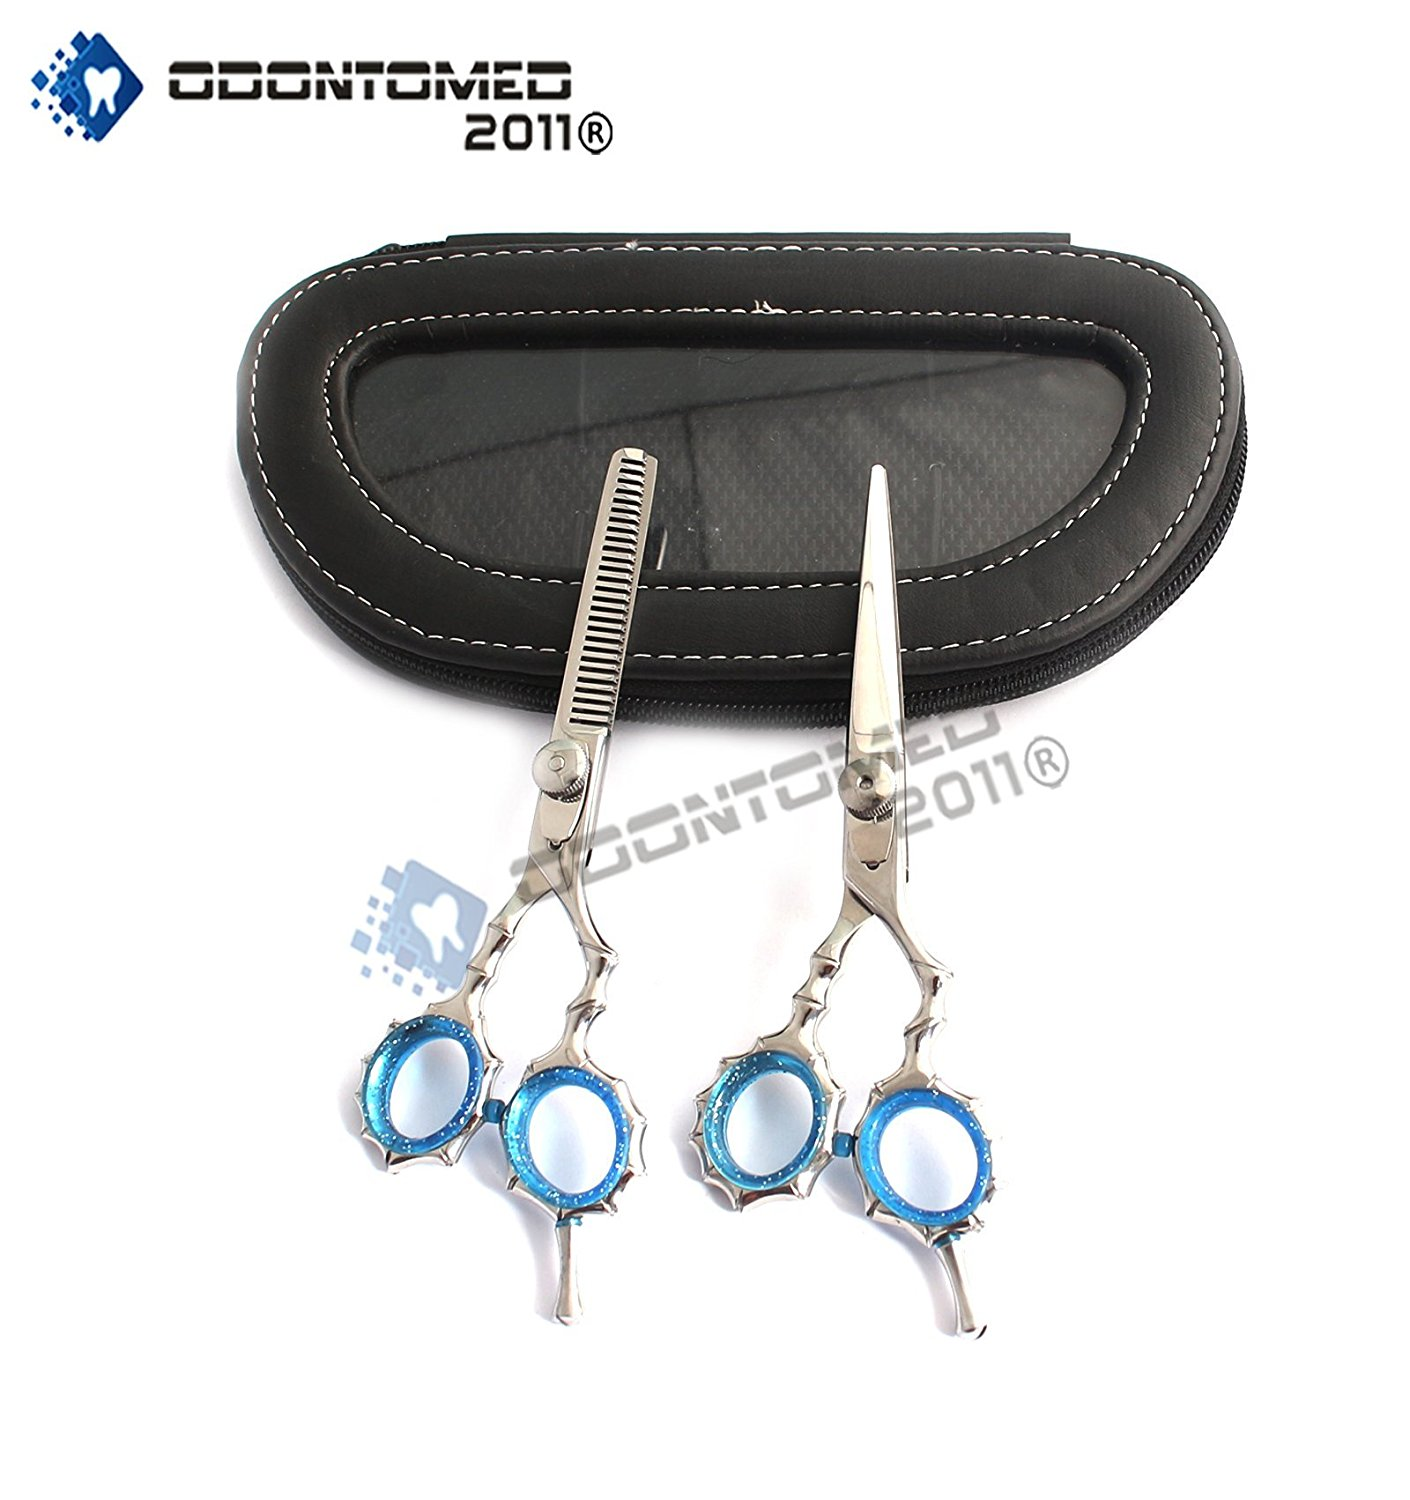 OdontoMed2011 OD2011-D-1509 NEW POLISH J2 SILVER JAPANESE STEEL PROFESSIONAL RAZOR EDGE HAIRDRESSING SCISSORS AND HAIR THINNING SCISSORS/SHEAR SET 5.5 INCH (14CM) A+ QUALITY